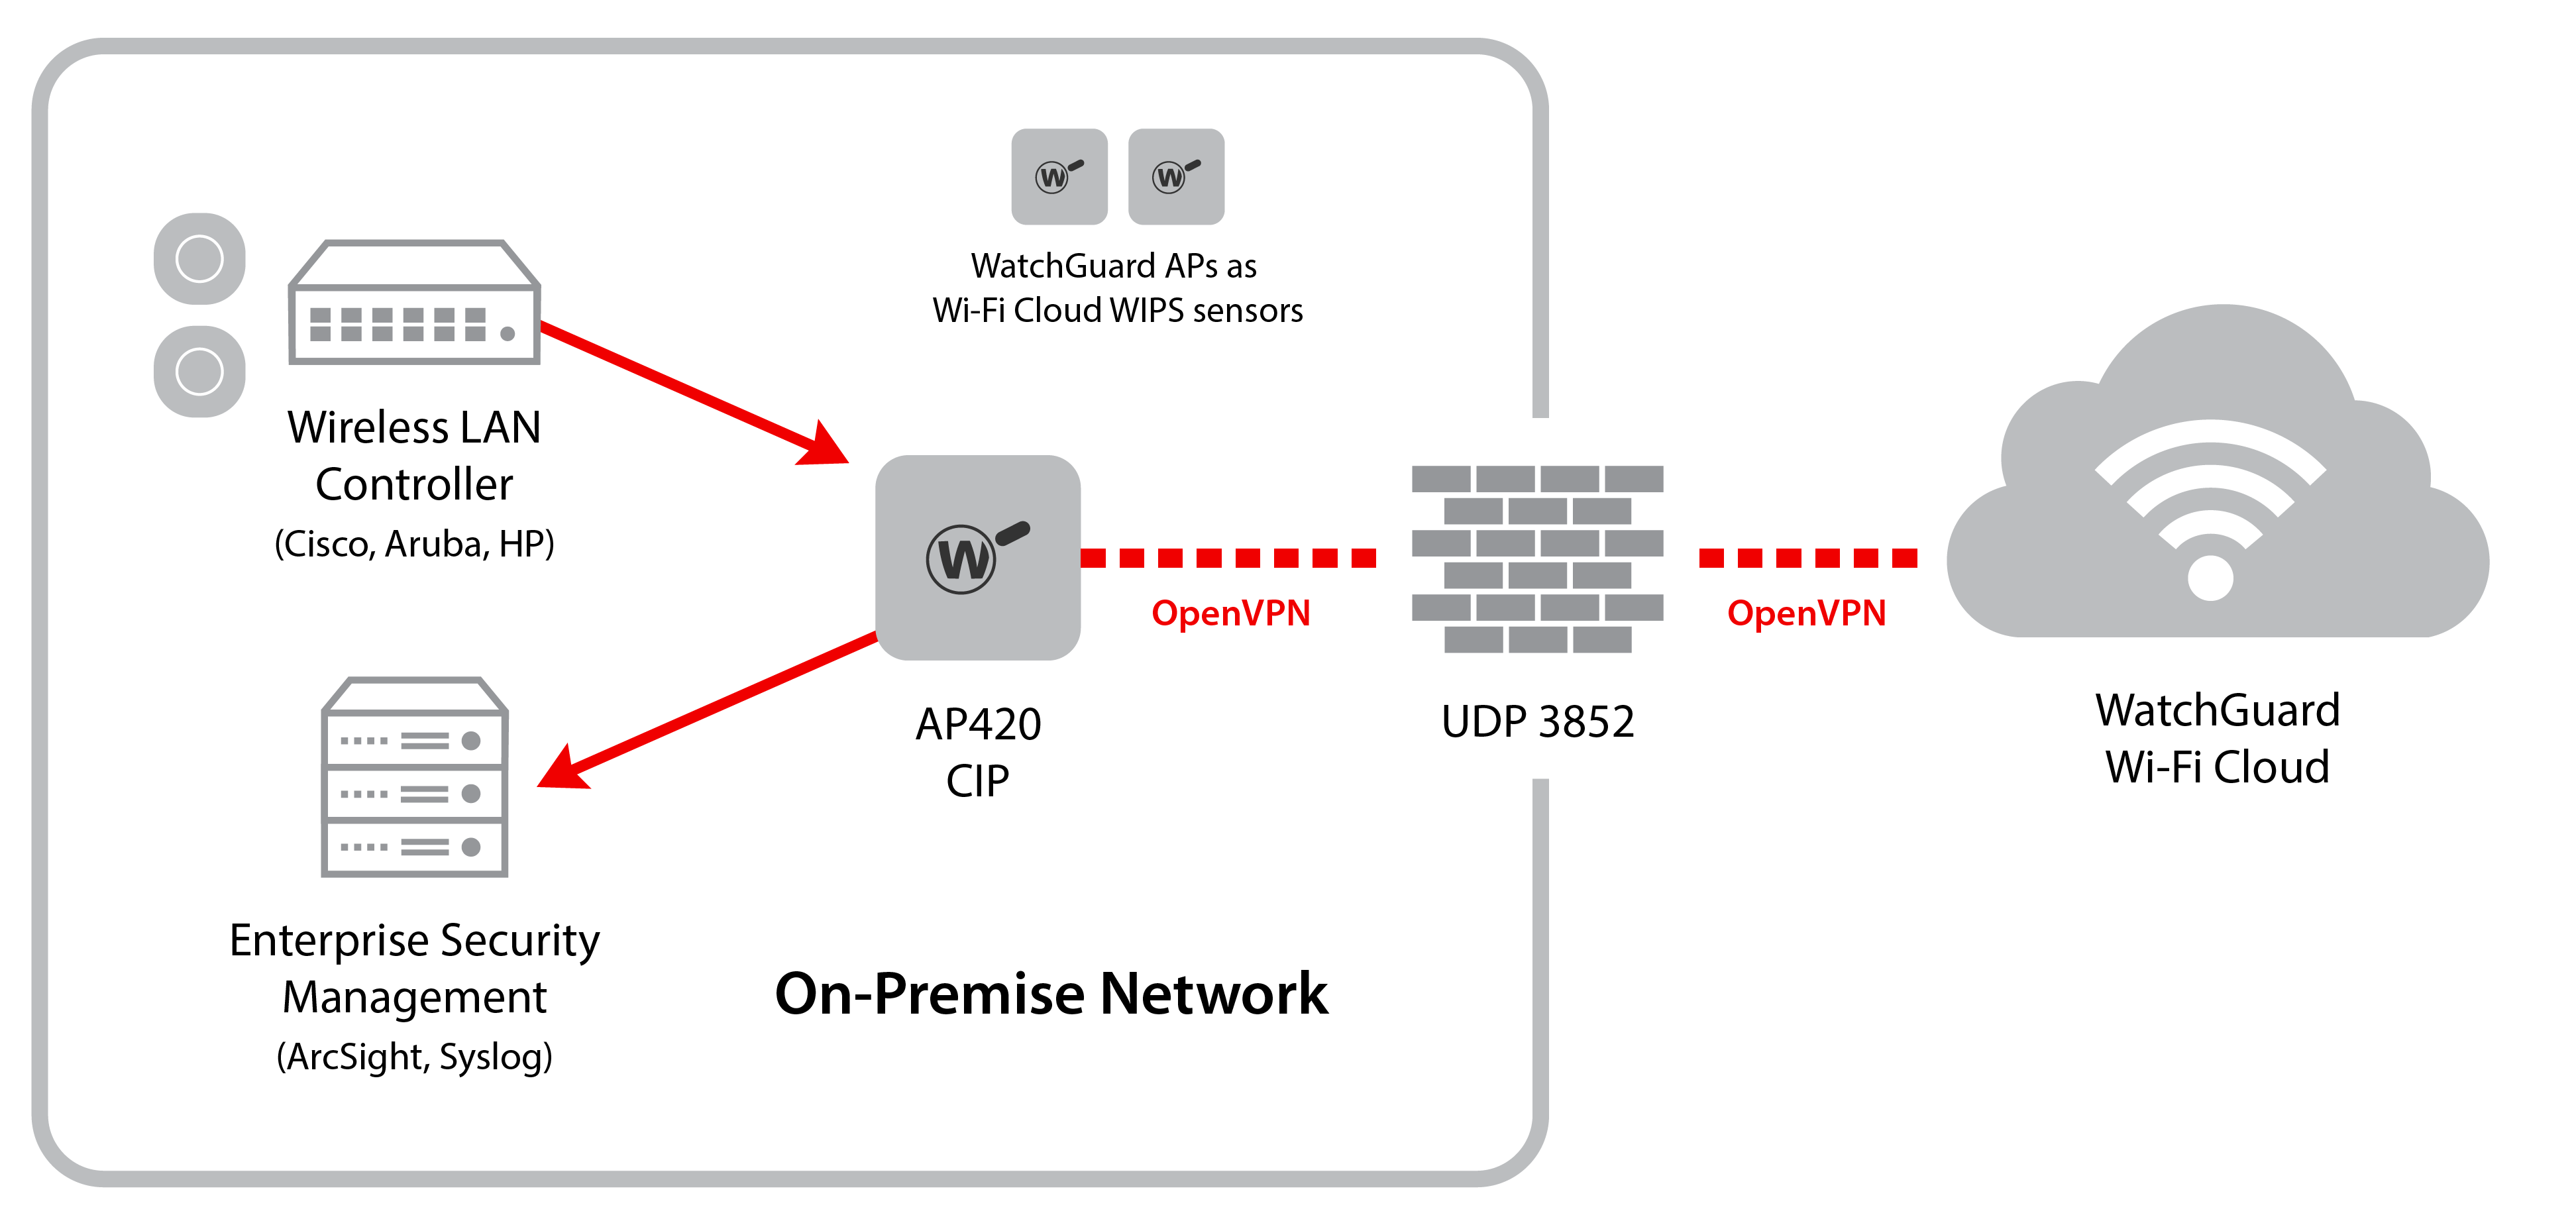 Wi-Fi Cloud Integration with Third-Party Controllers using CIP